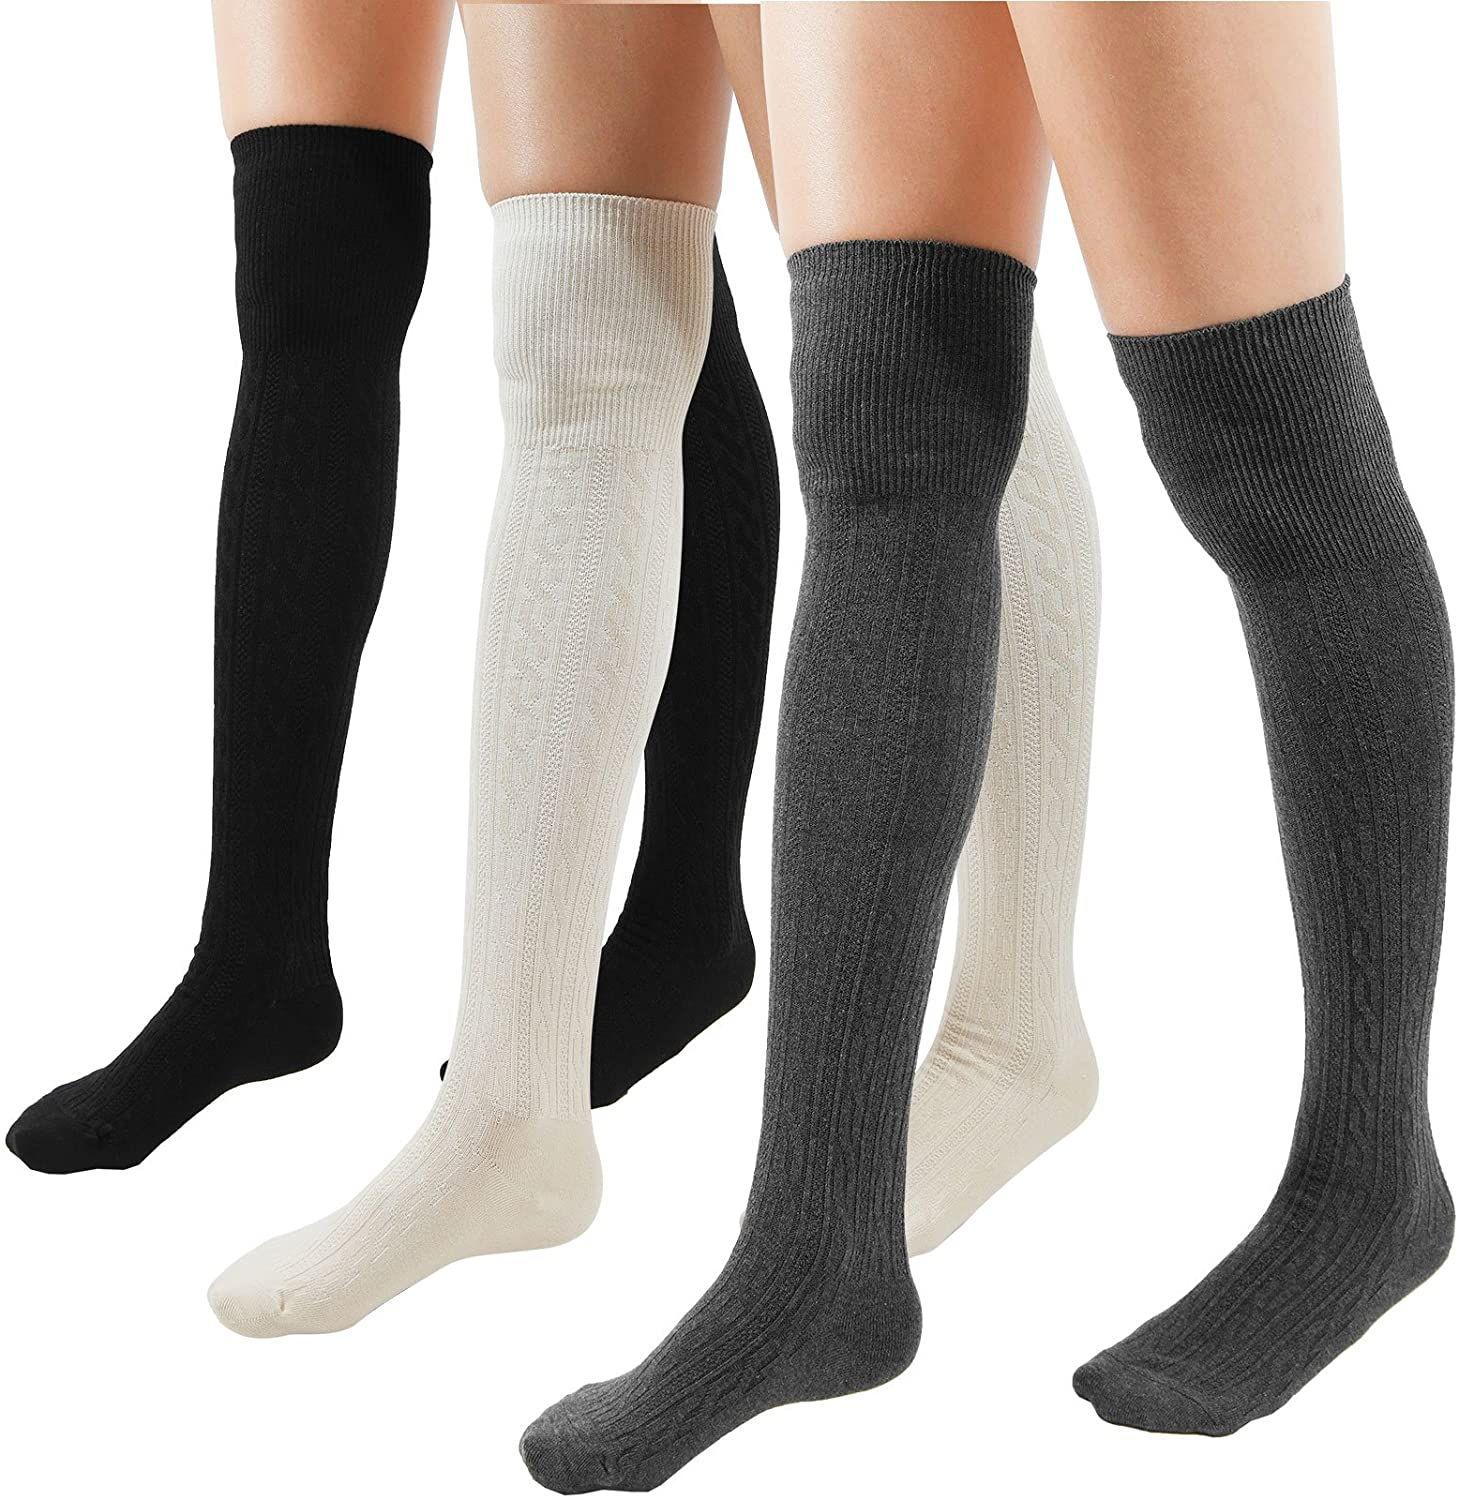 Women Cable Over The Knee Socks Cotton (Muti Pack-3pairs(Black,Gray,Beige))